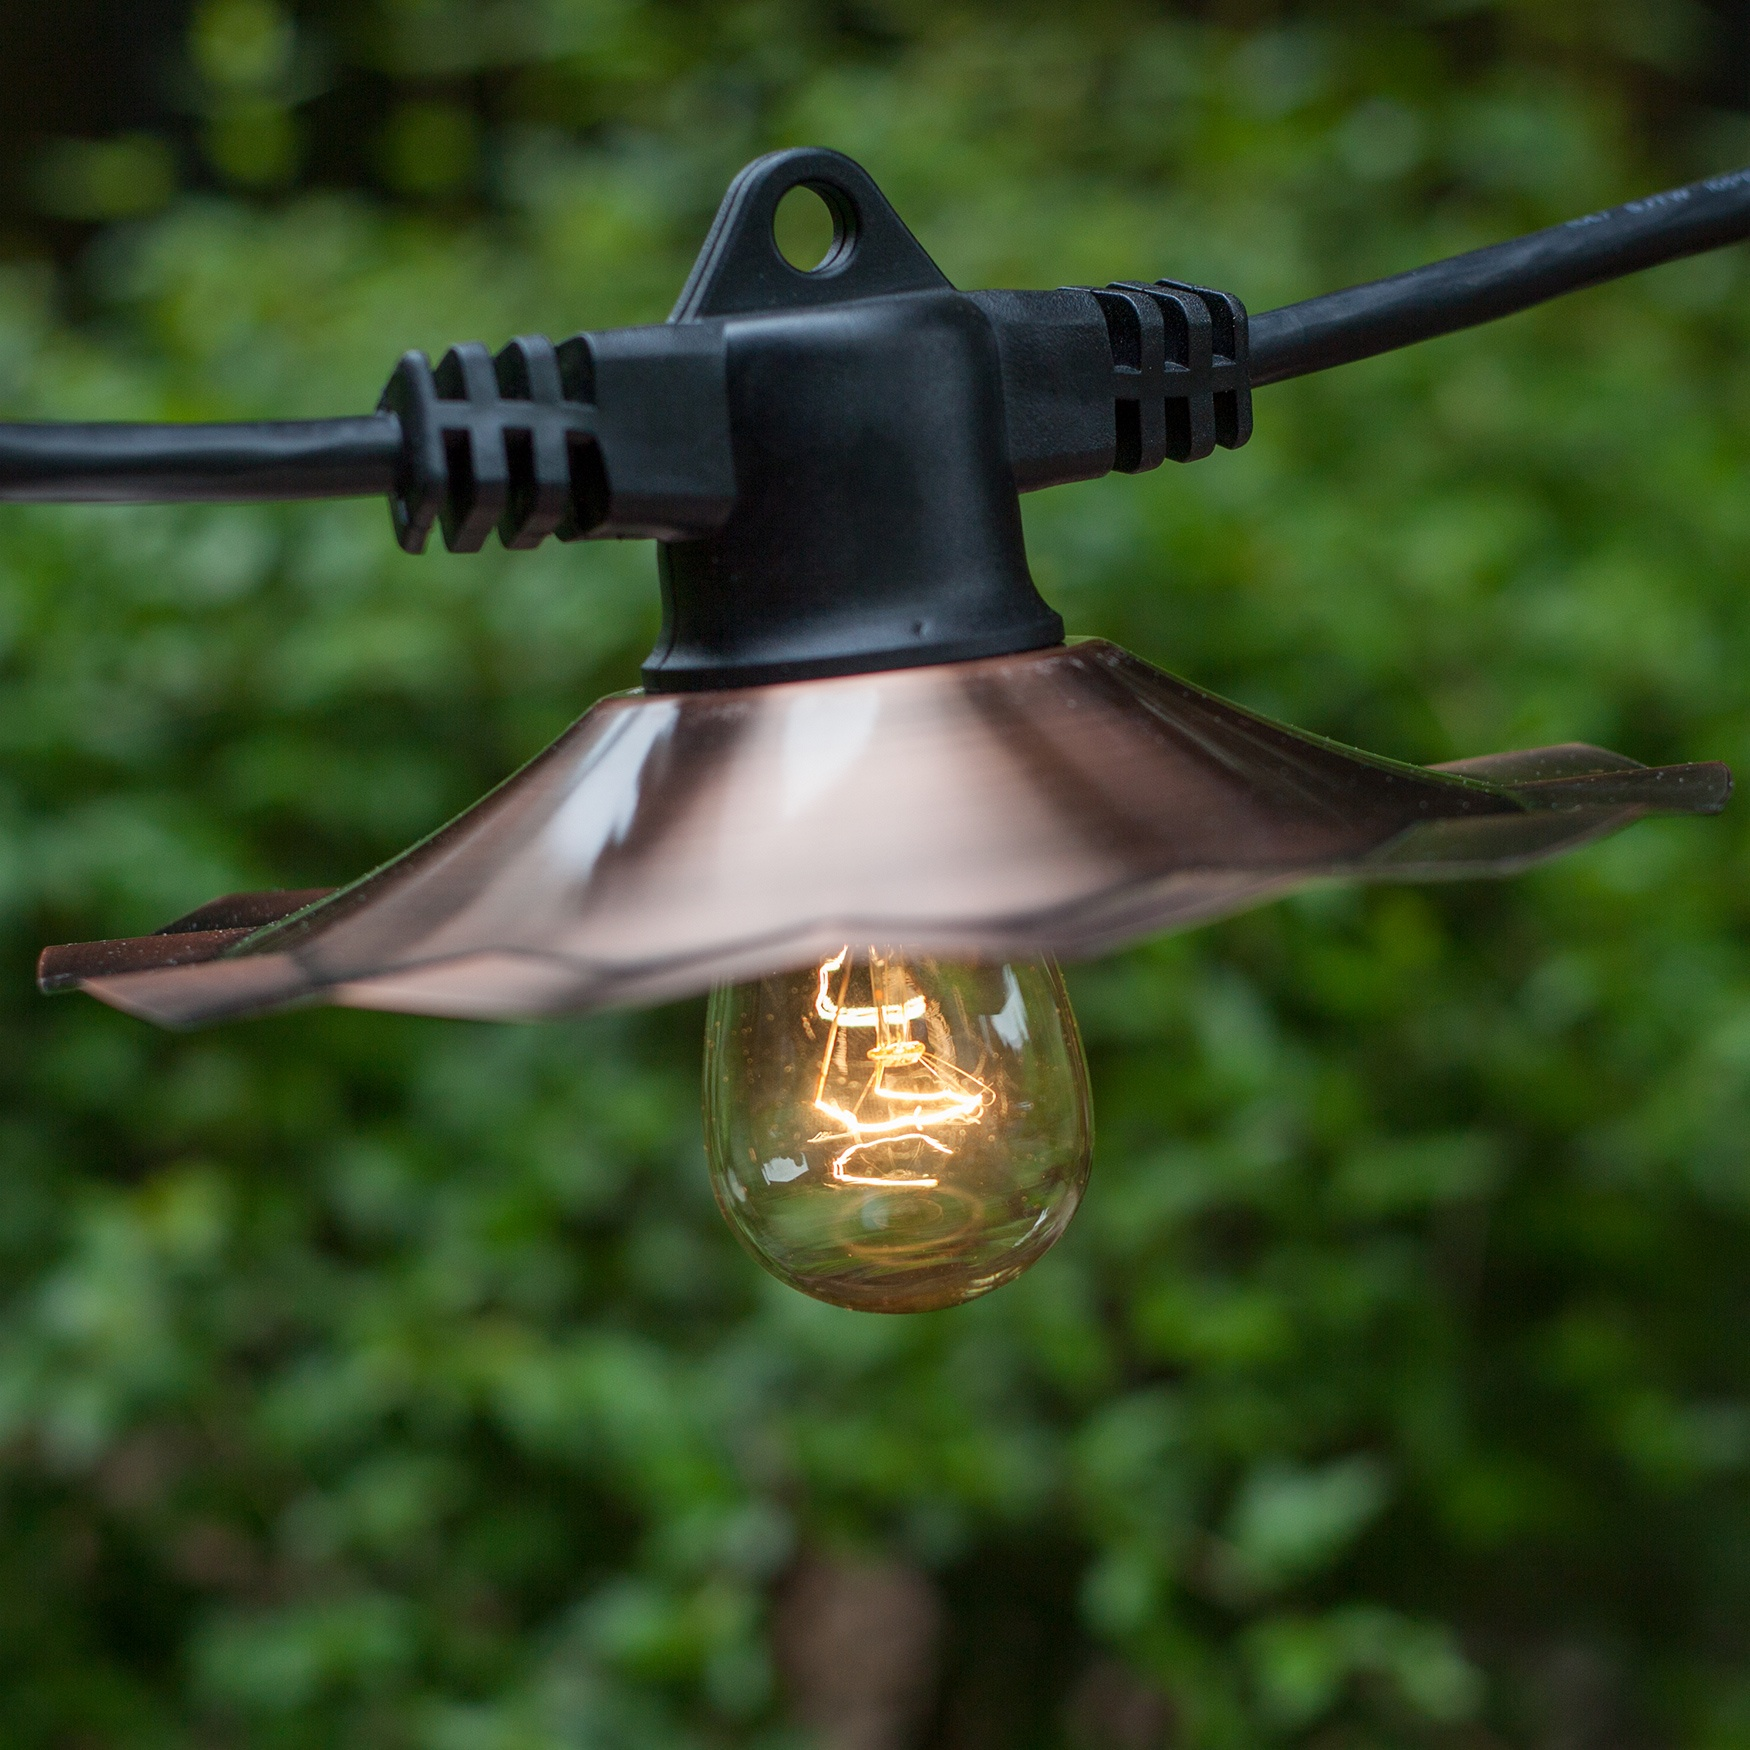 outdoor string lighting fool patio the hanging perfect how by easy best way add hang this to your ambiance lights space